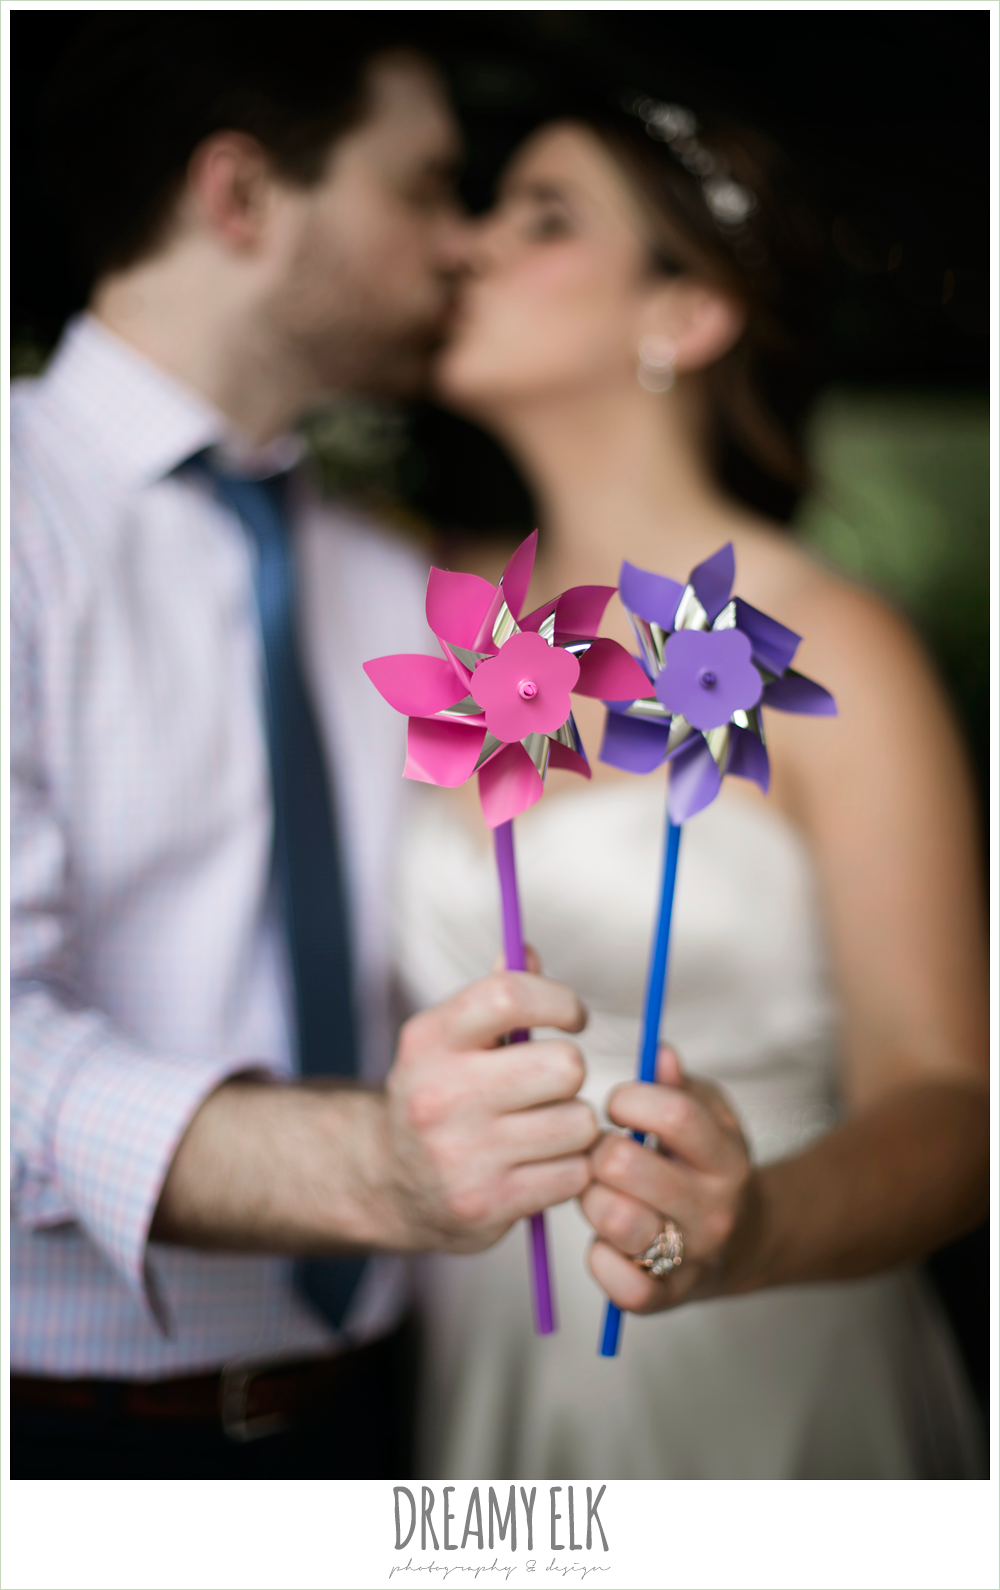 bride and groom with pinwheels, colorful outdoor sunday morning brunch wedding, hyatt hill country club, san antonio wedding photo {dreamy elk photography and design}